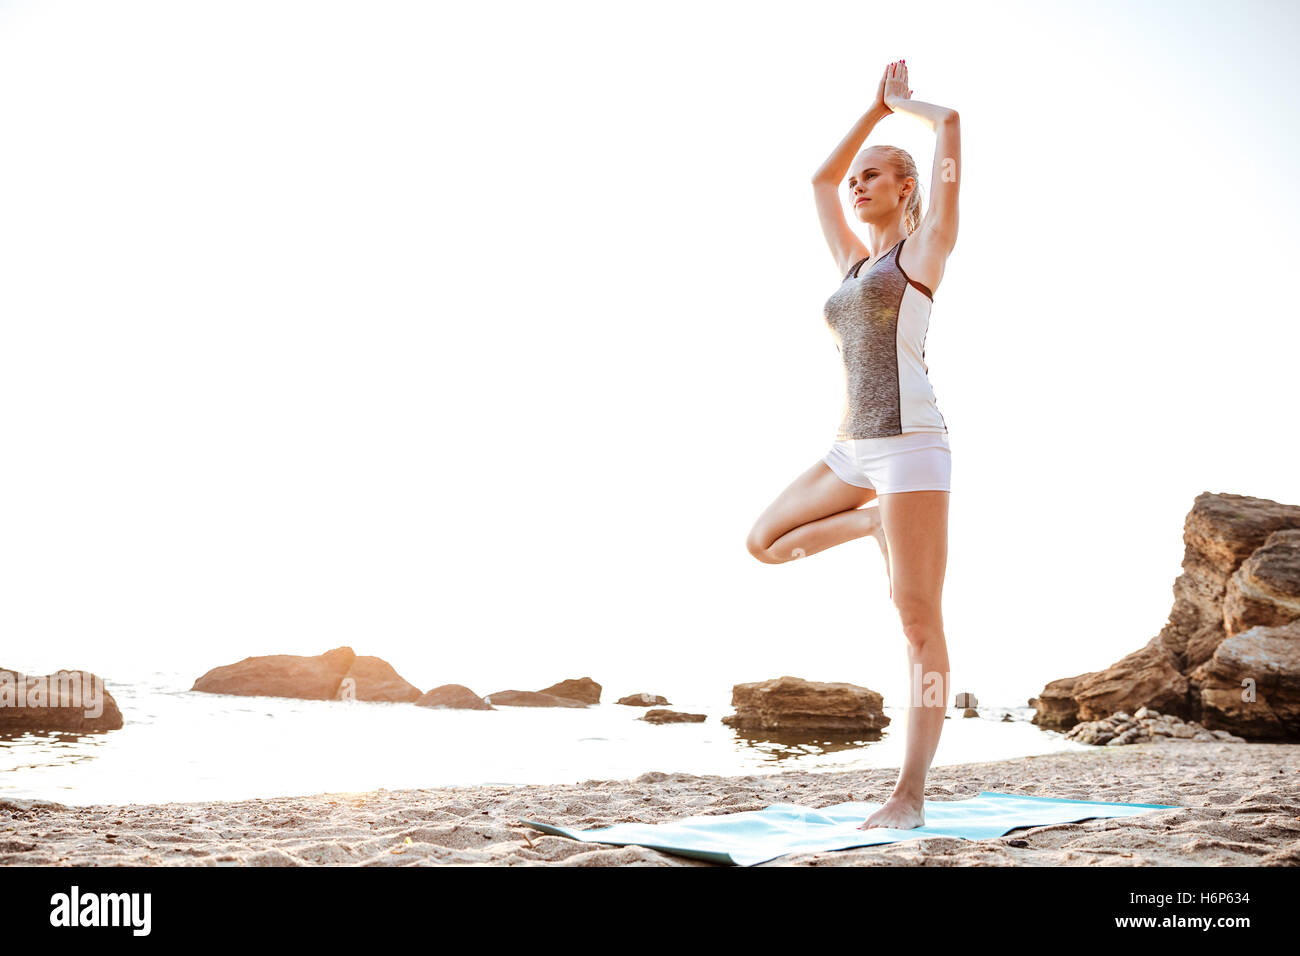 Portrait of a young woman standing in yoga pose on one leg on beach - Stock Image